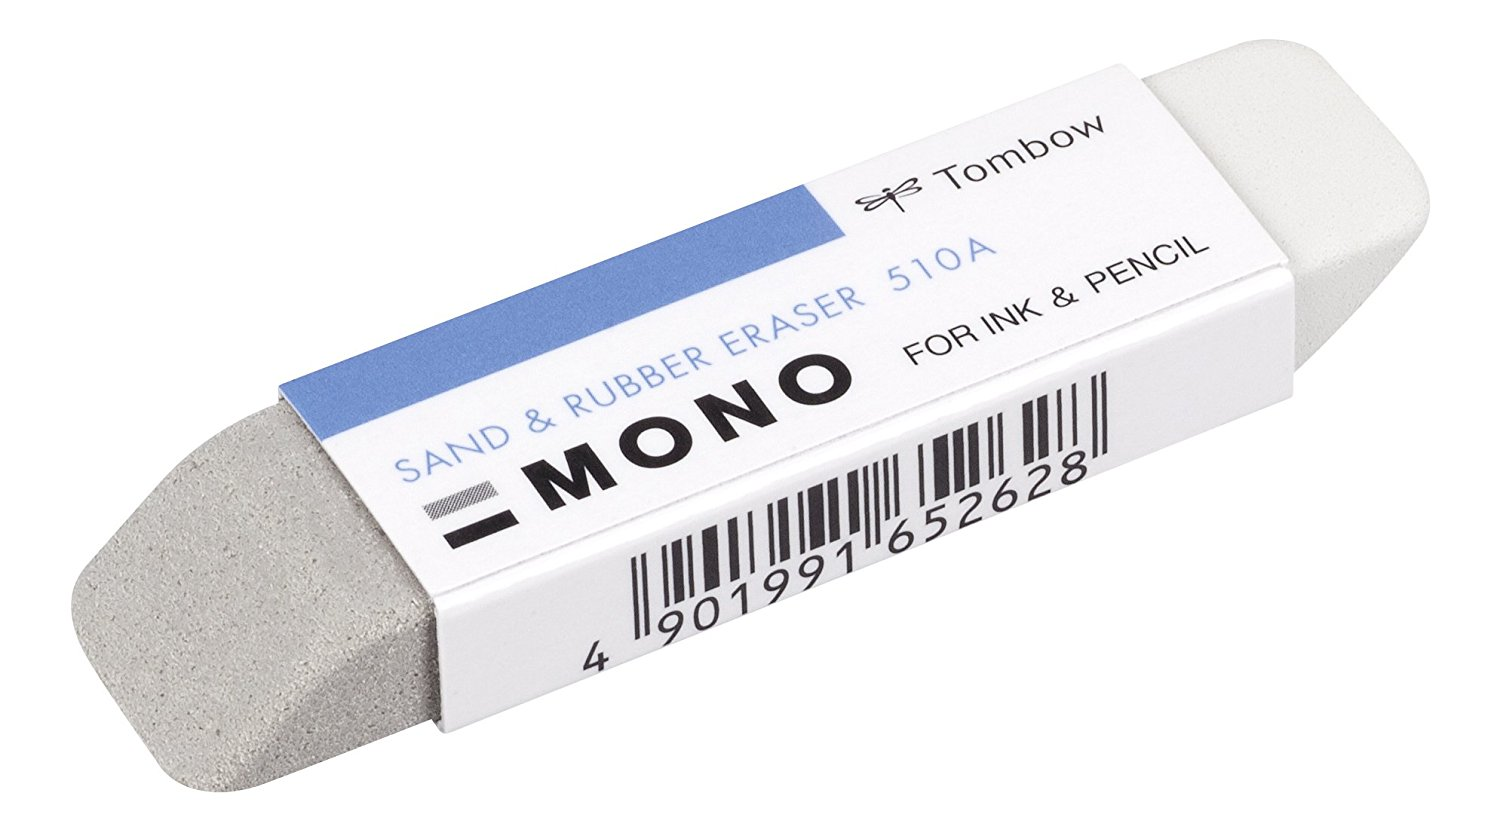 Combination Sand and Rubber Eraser